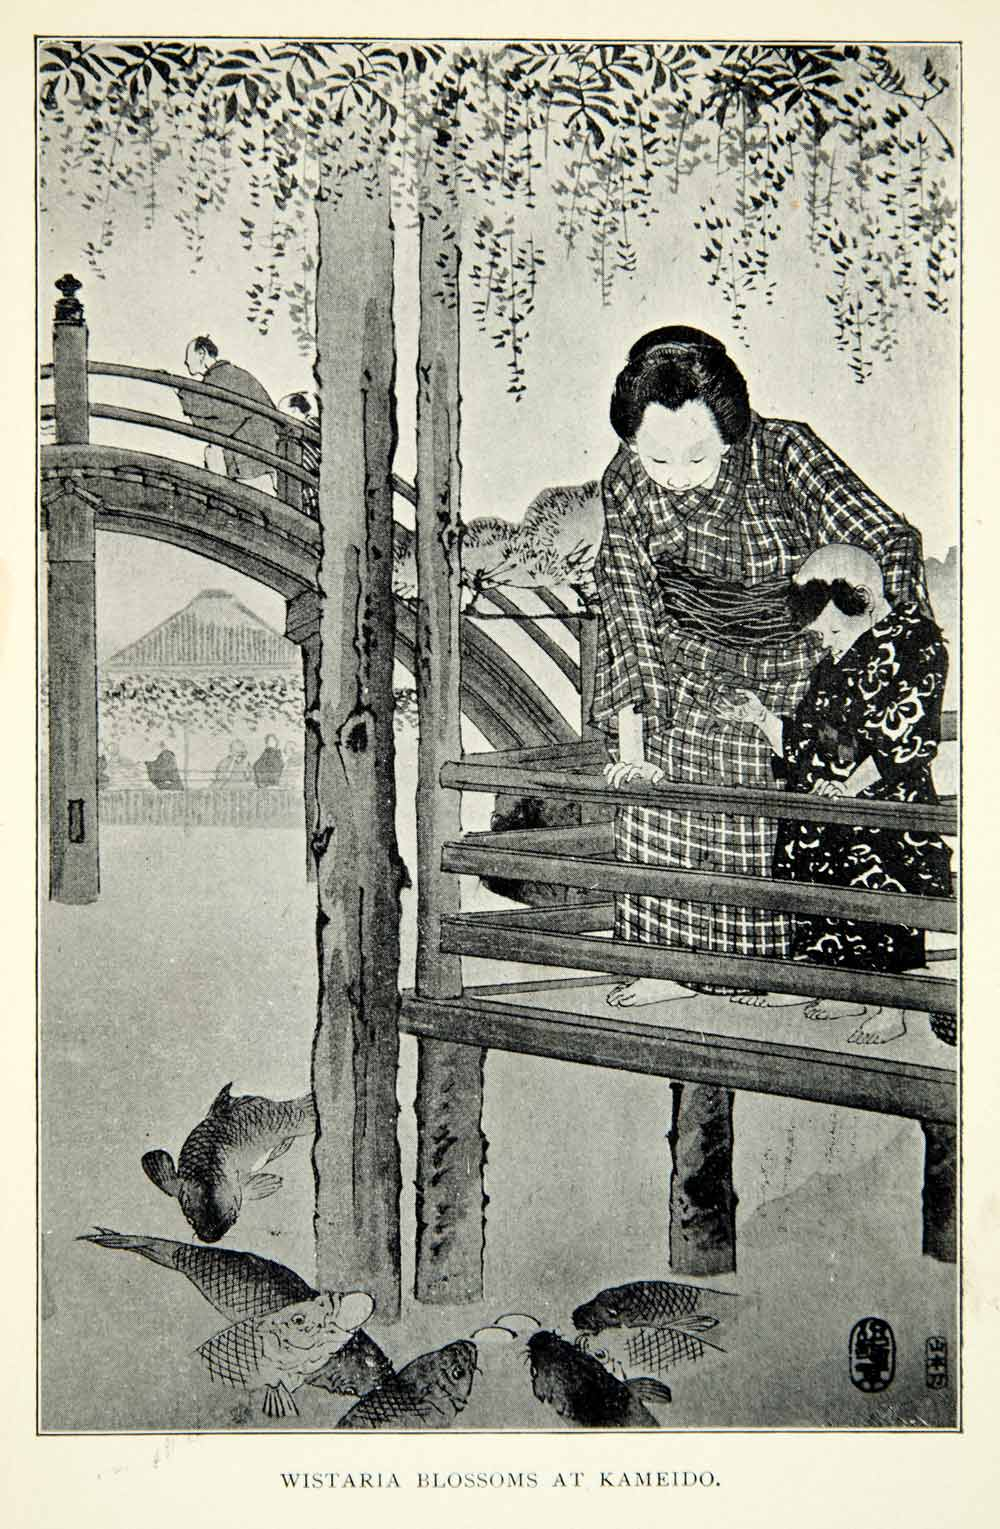 1904 Print Wisteria Blossoms Kameido Child Koi Fish Bridge Mother Kimono XGAE5